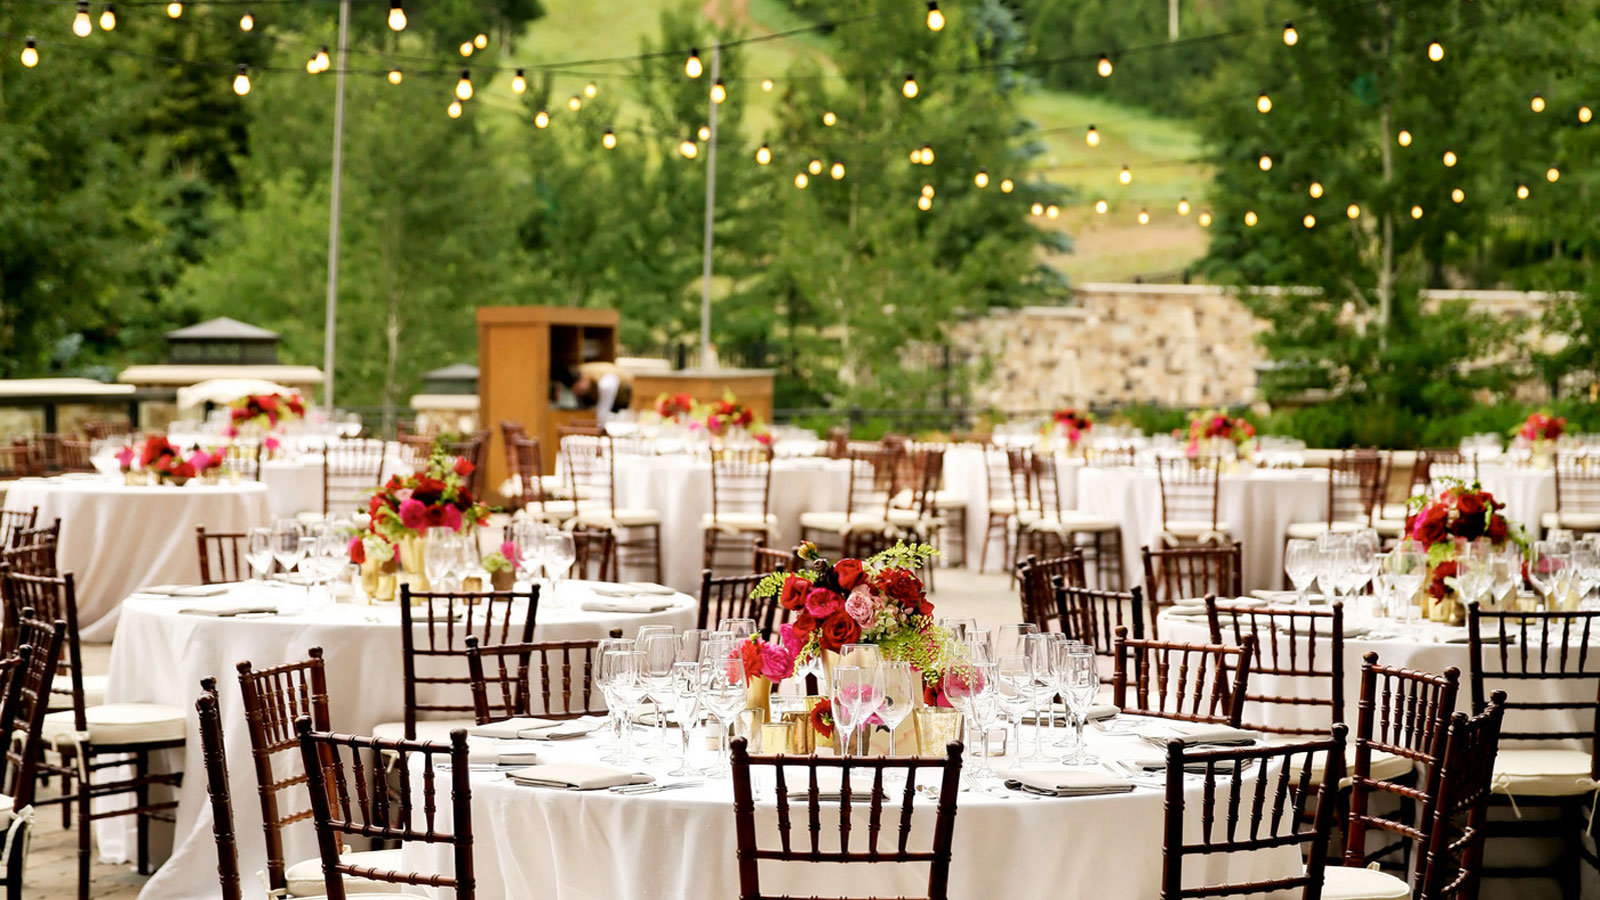 Wedding venues in utah the st regis deer valley for Places for outdoor weddings